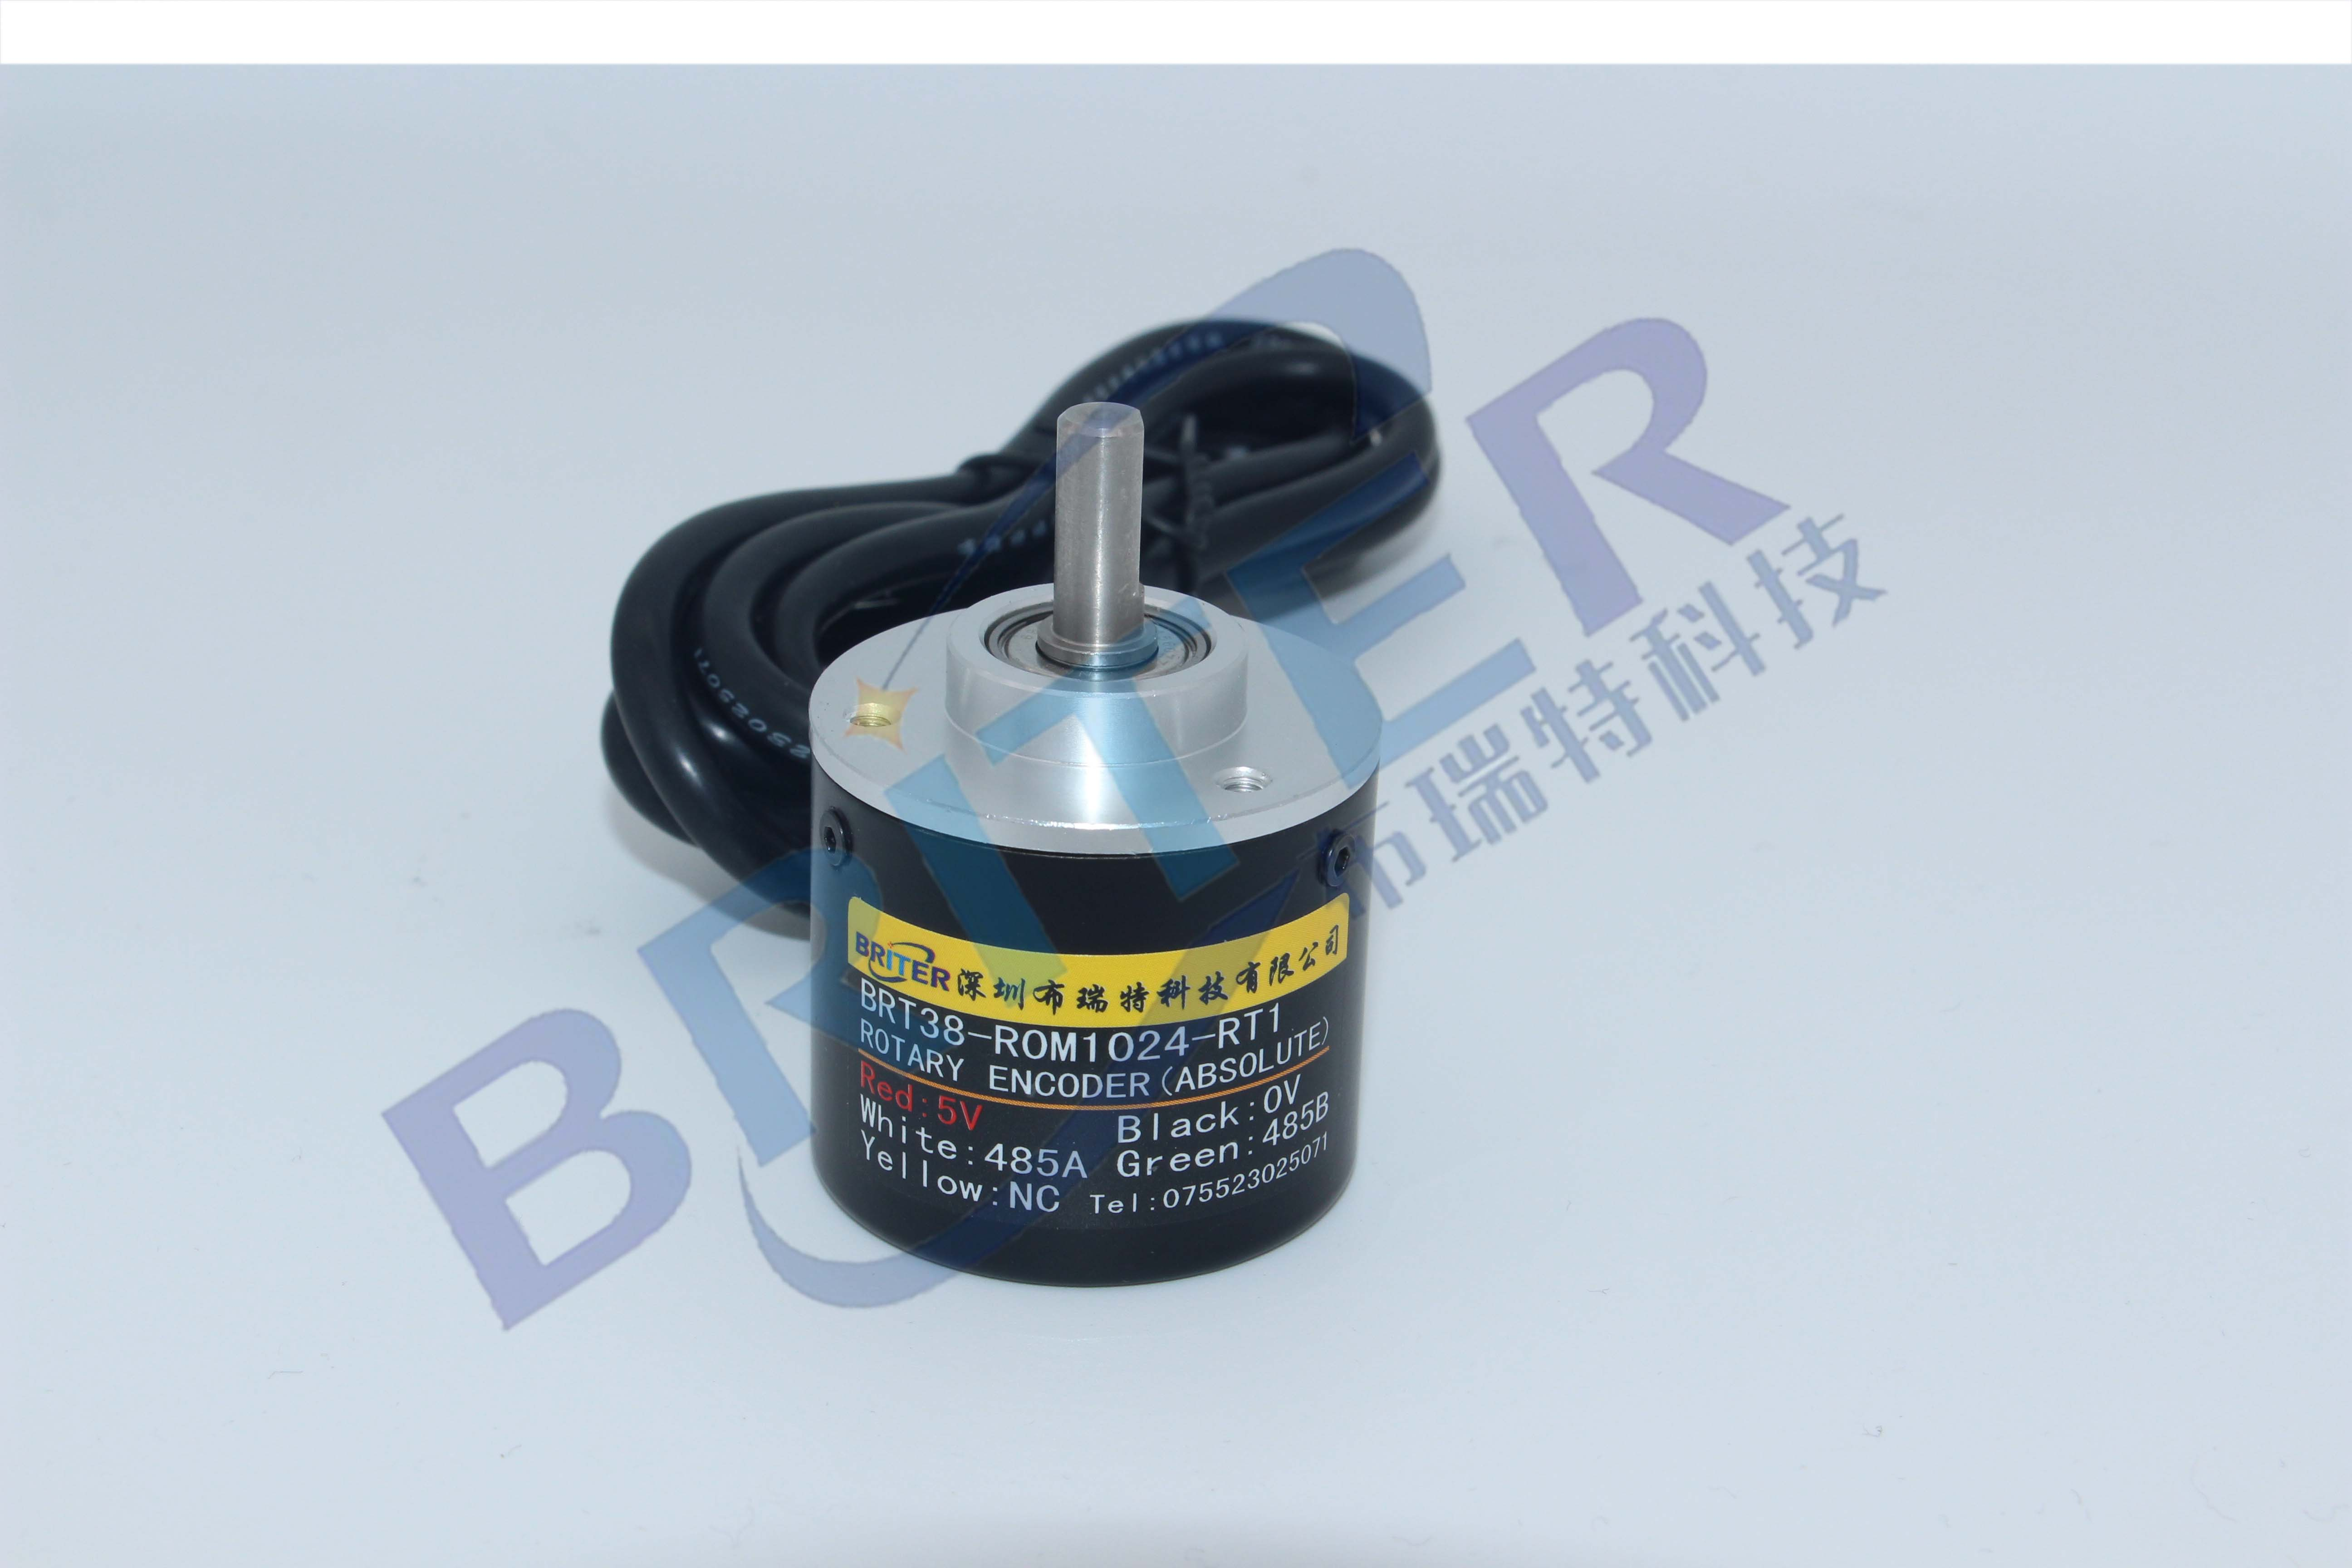 24-turn Encoder Angle Rotation Absolute Value RS485 Magnetic Encoder